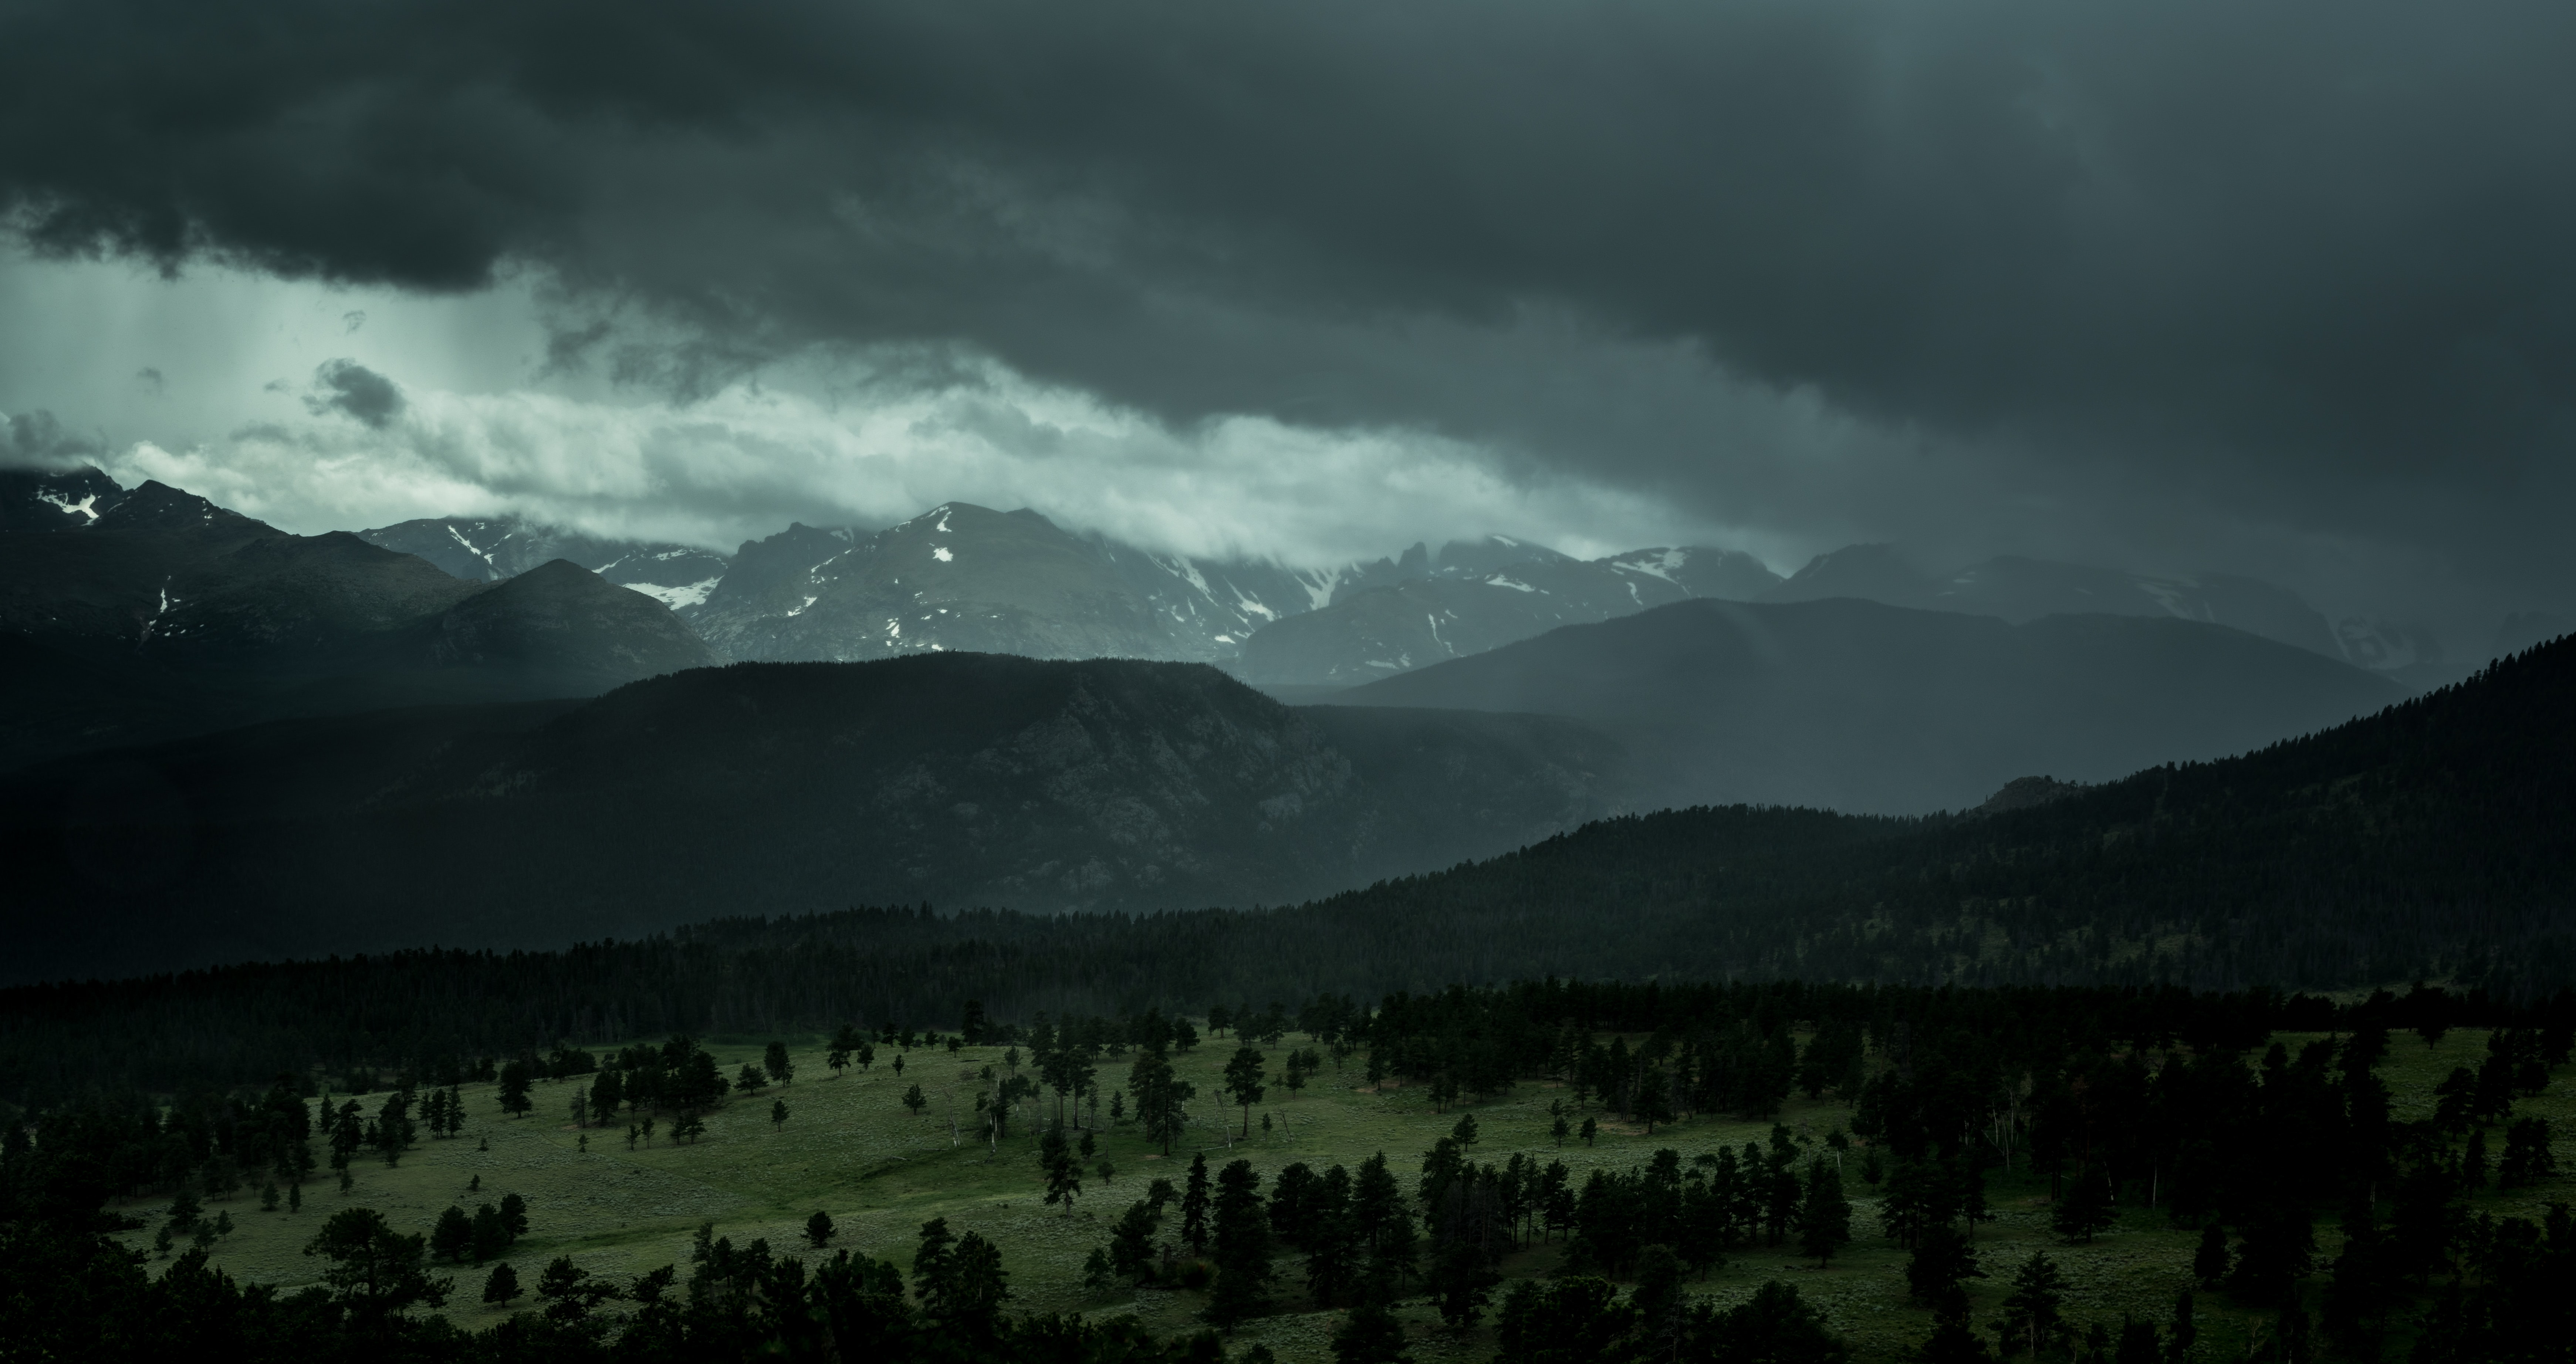 silhouette mountains under cloudy sky